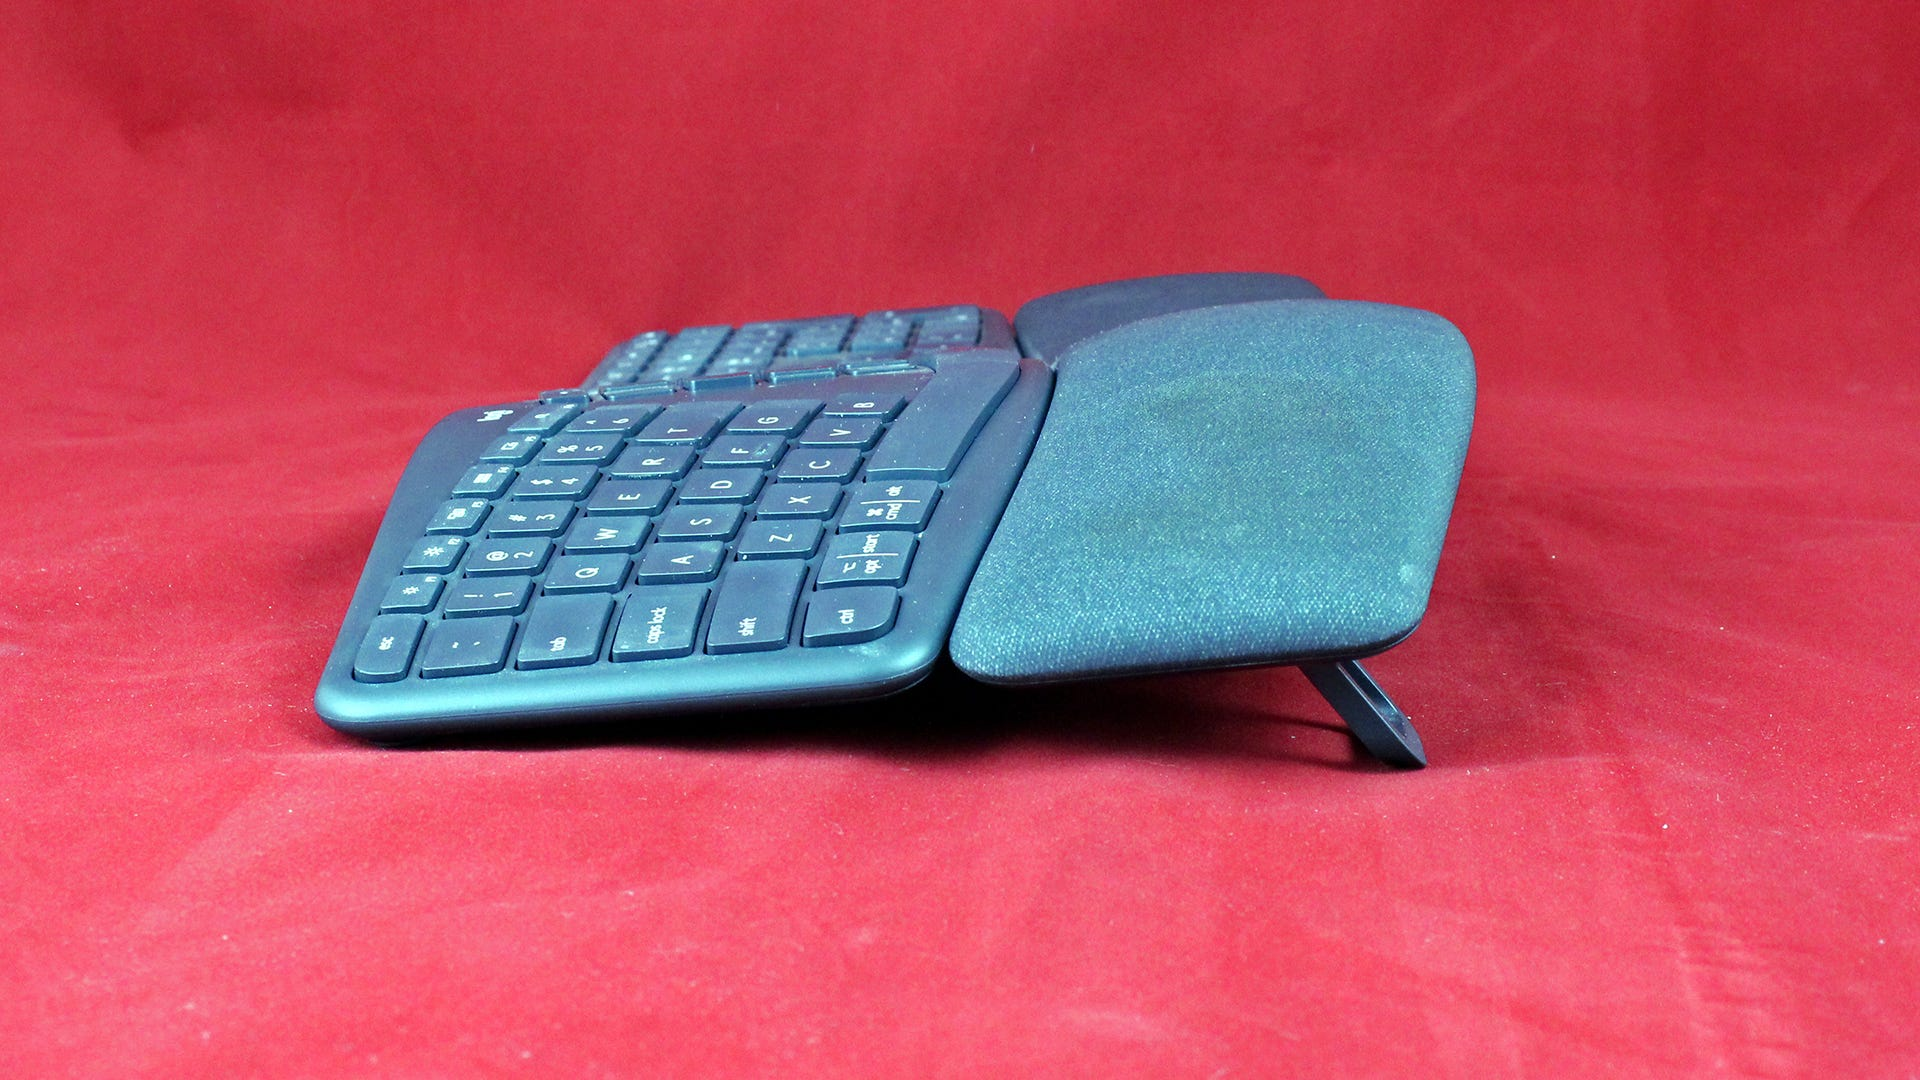 A side view of the ERGO keyboard, liften to -11 degrees.